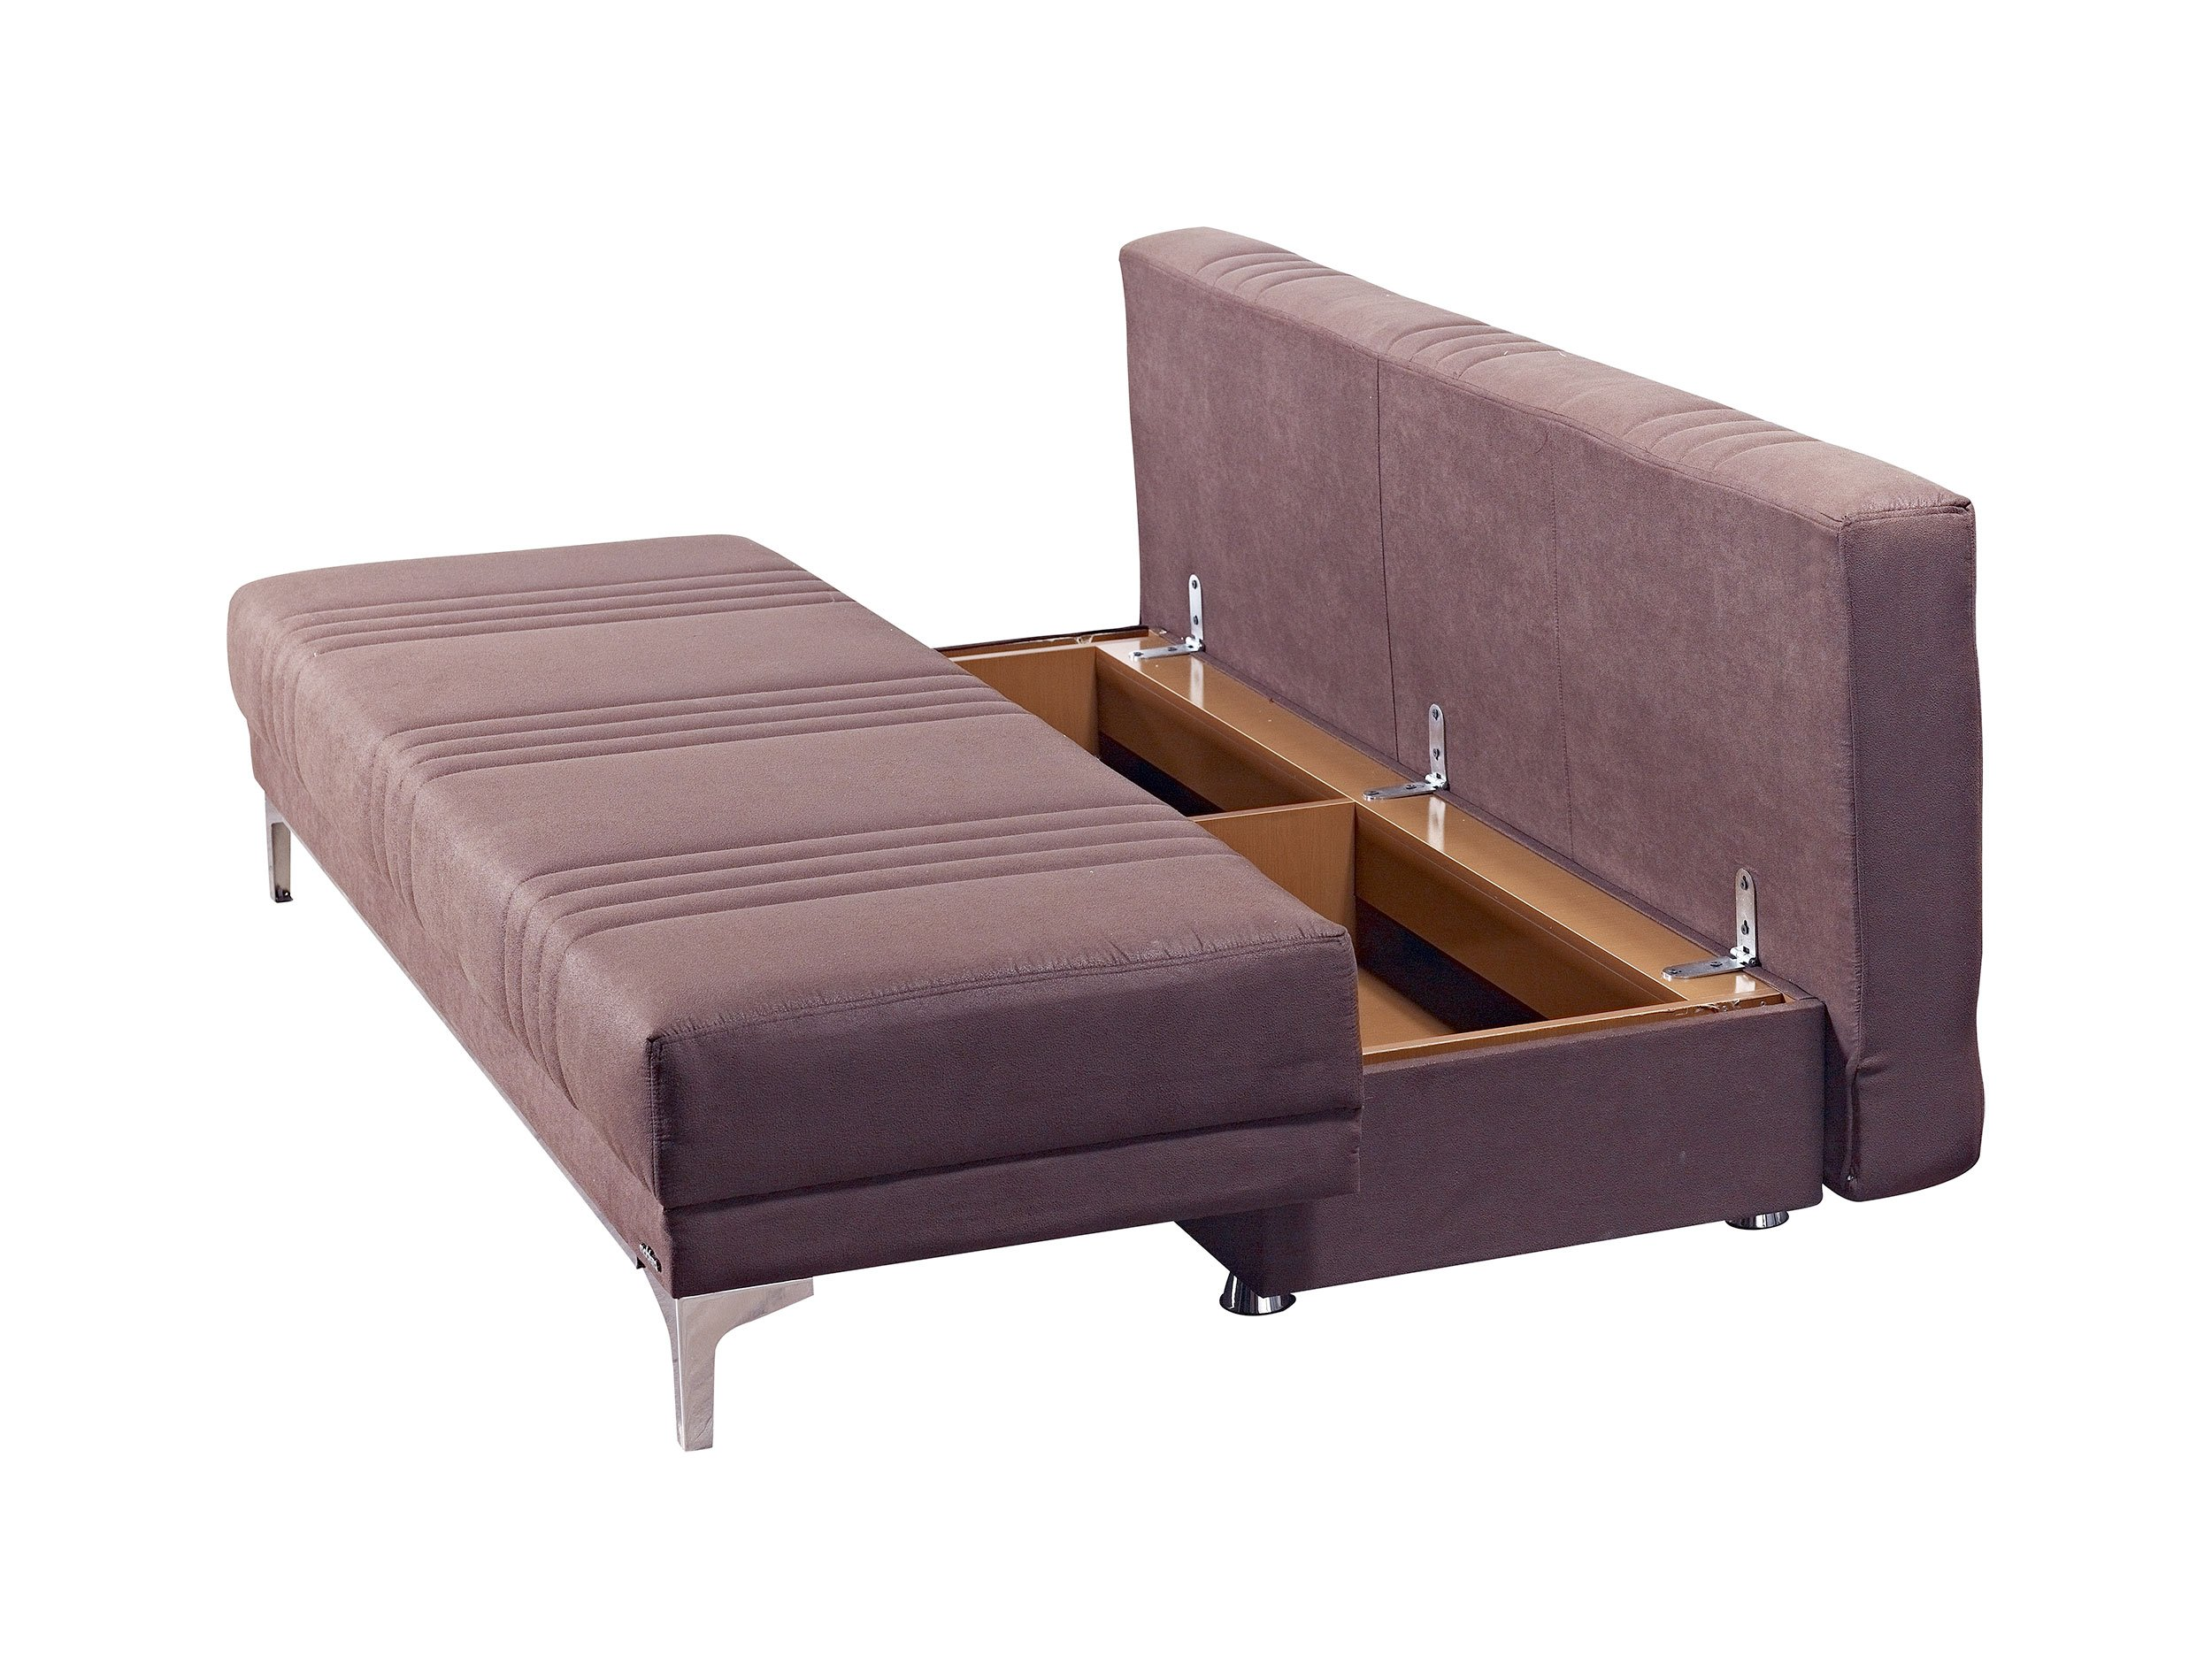 Europa vintage chocolate queen size sofa bed by mobista for Sofa bed queen size